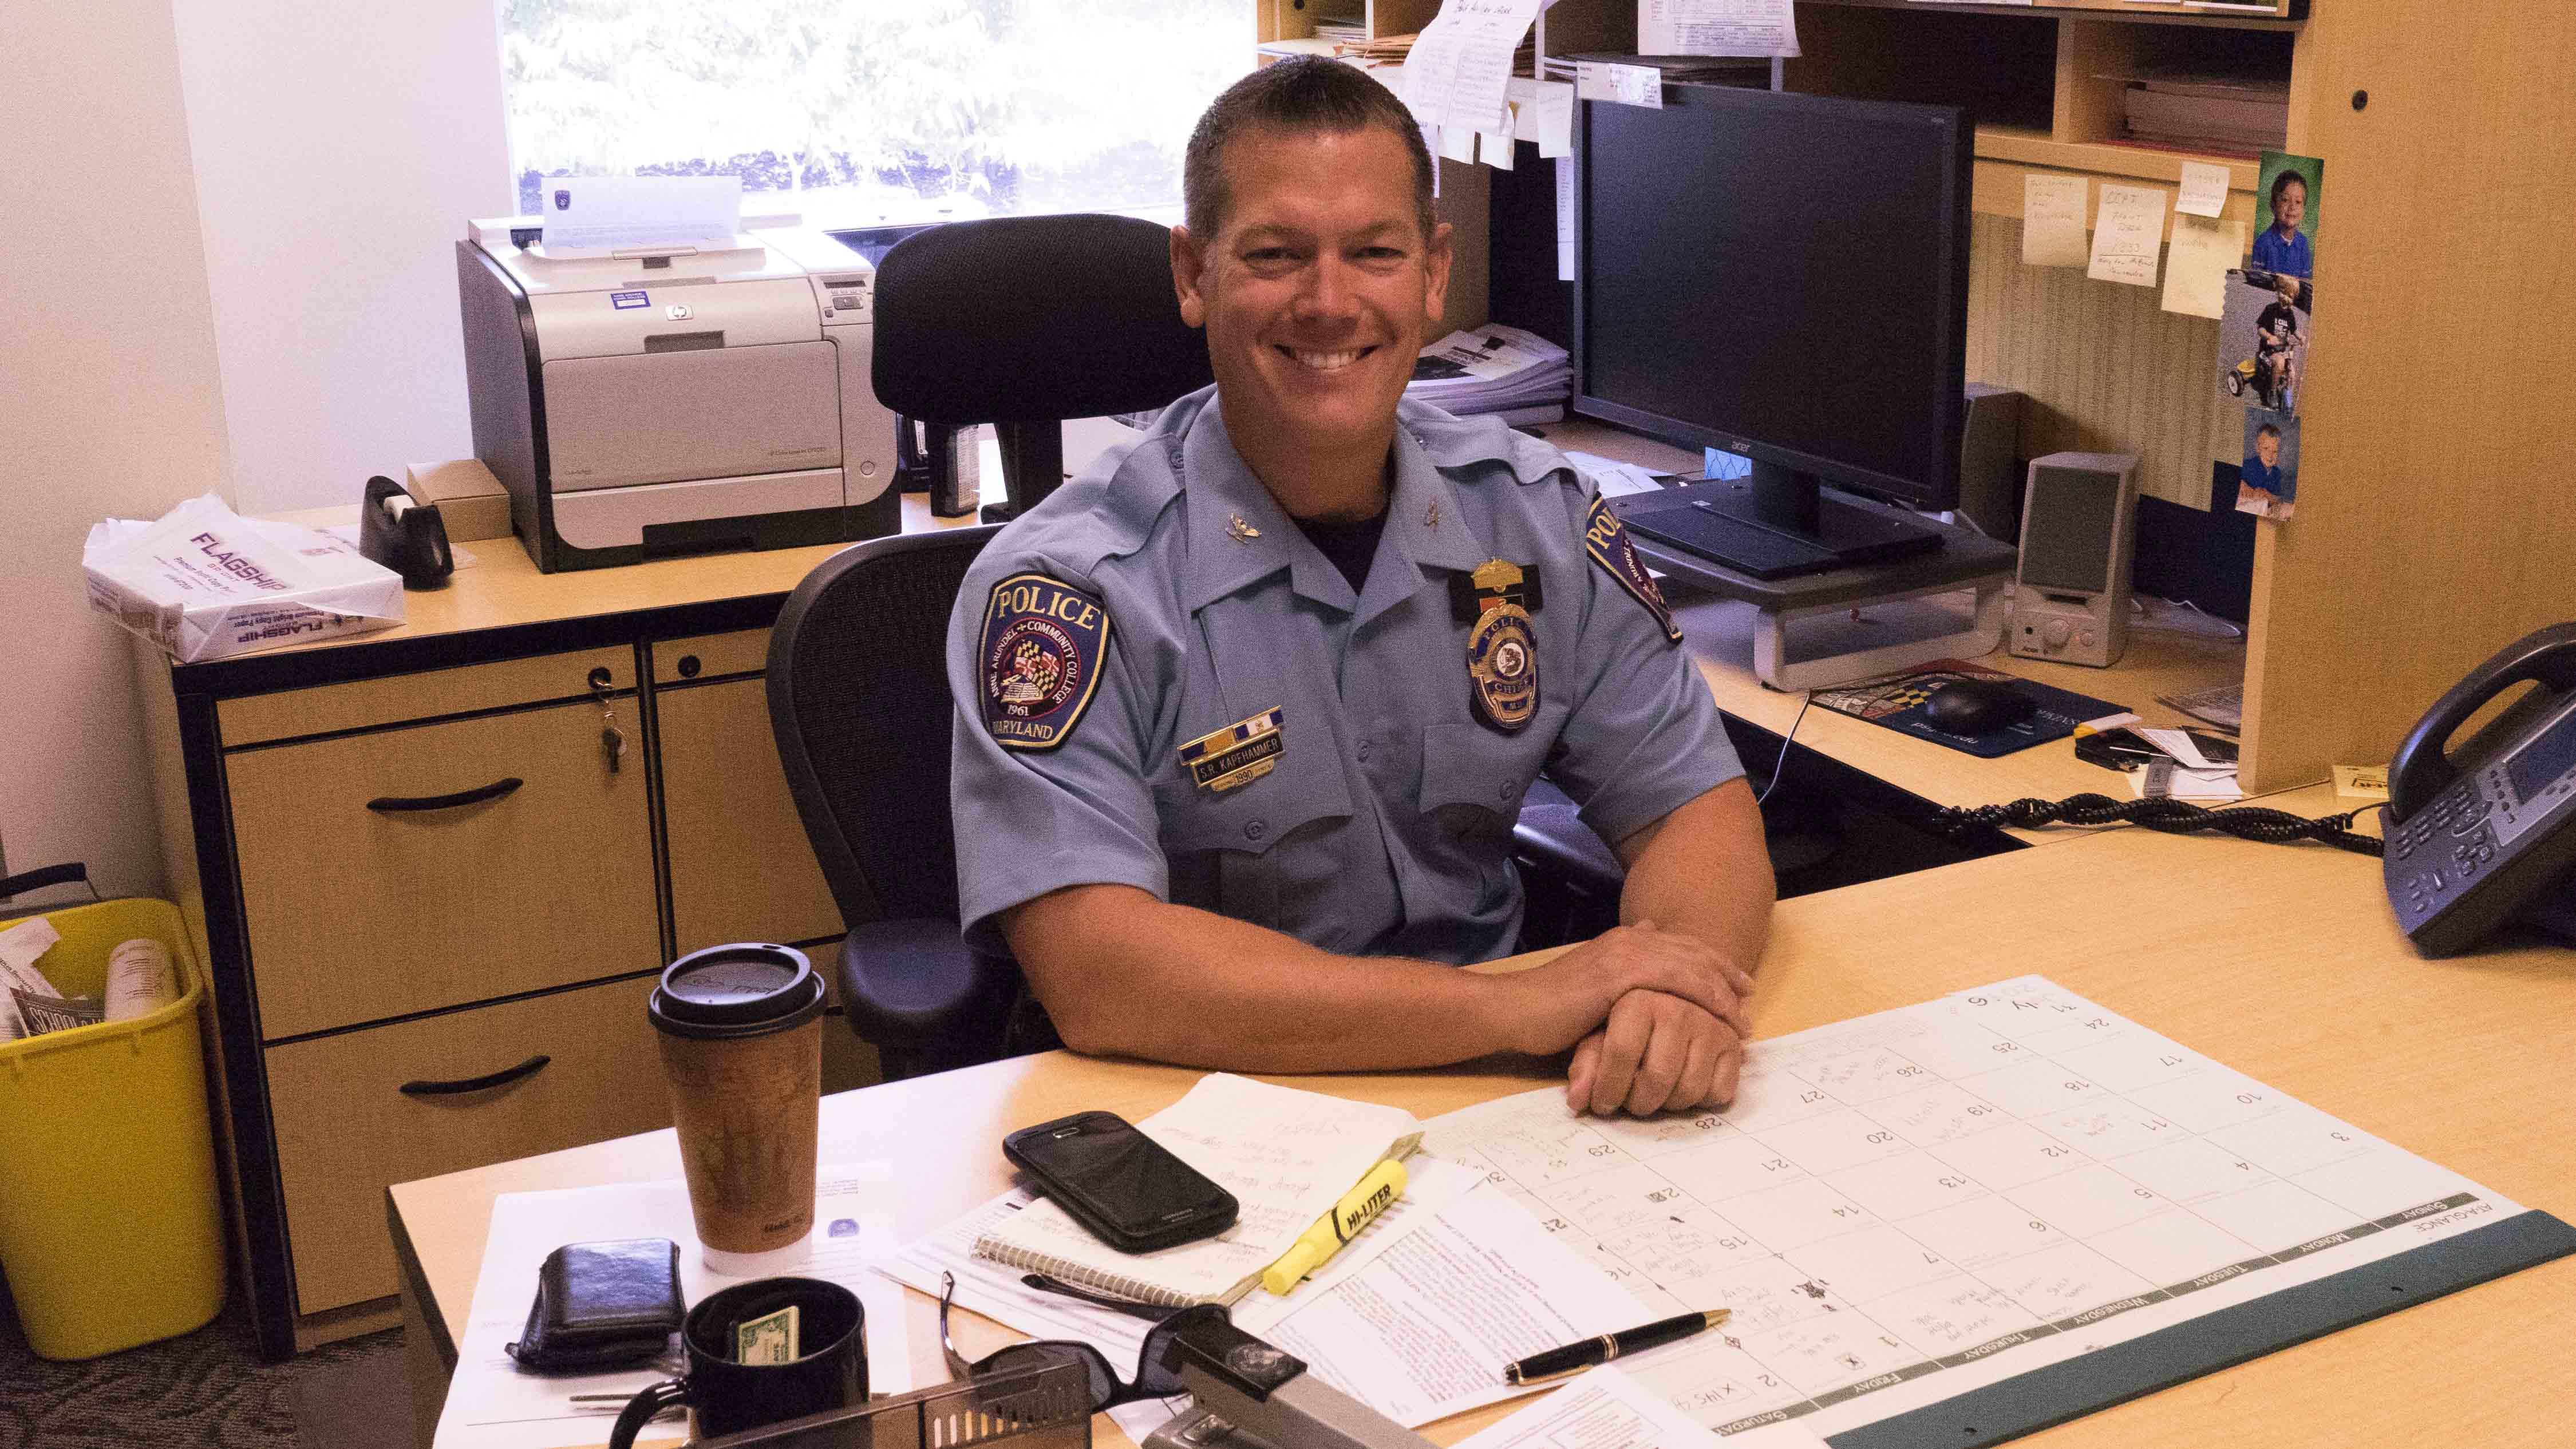 Campus Police Chief Sean Kapfhammer has been involved in law enforcement since he was 19 years old.